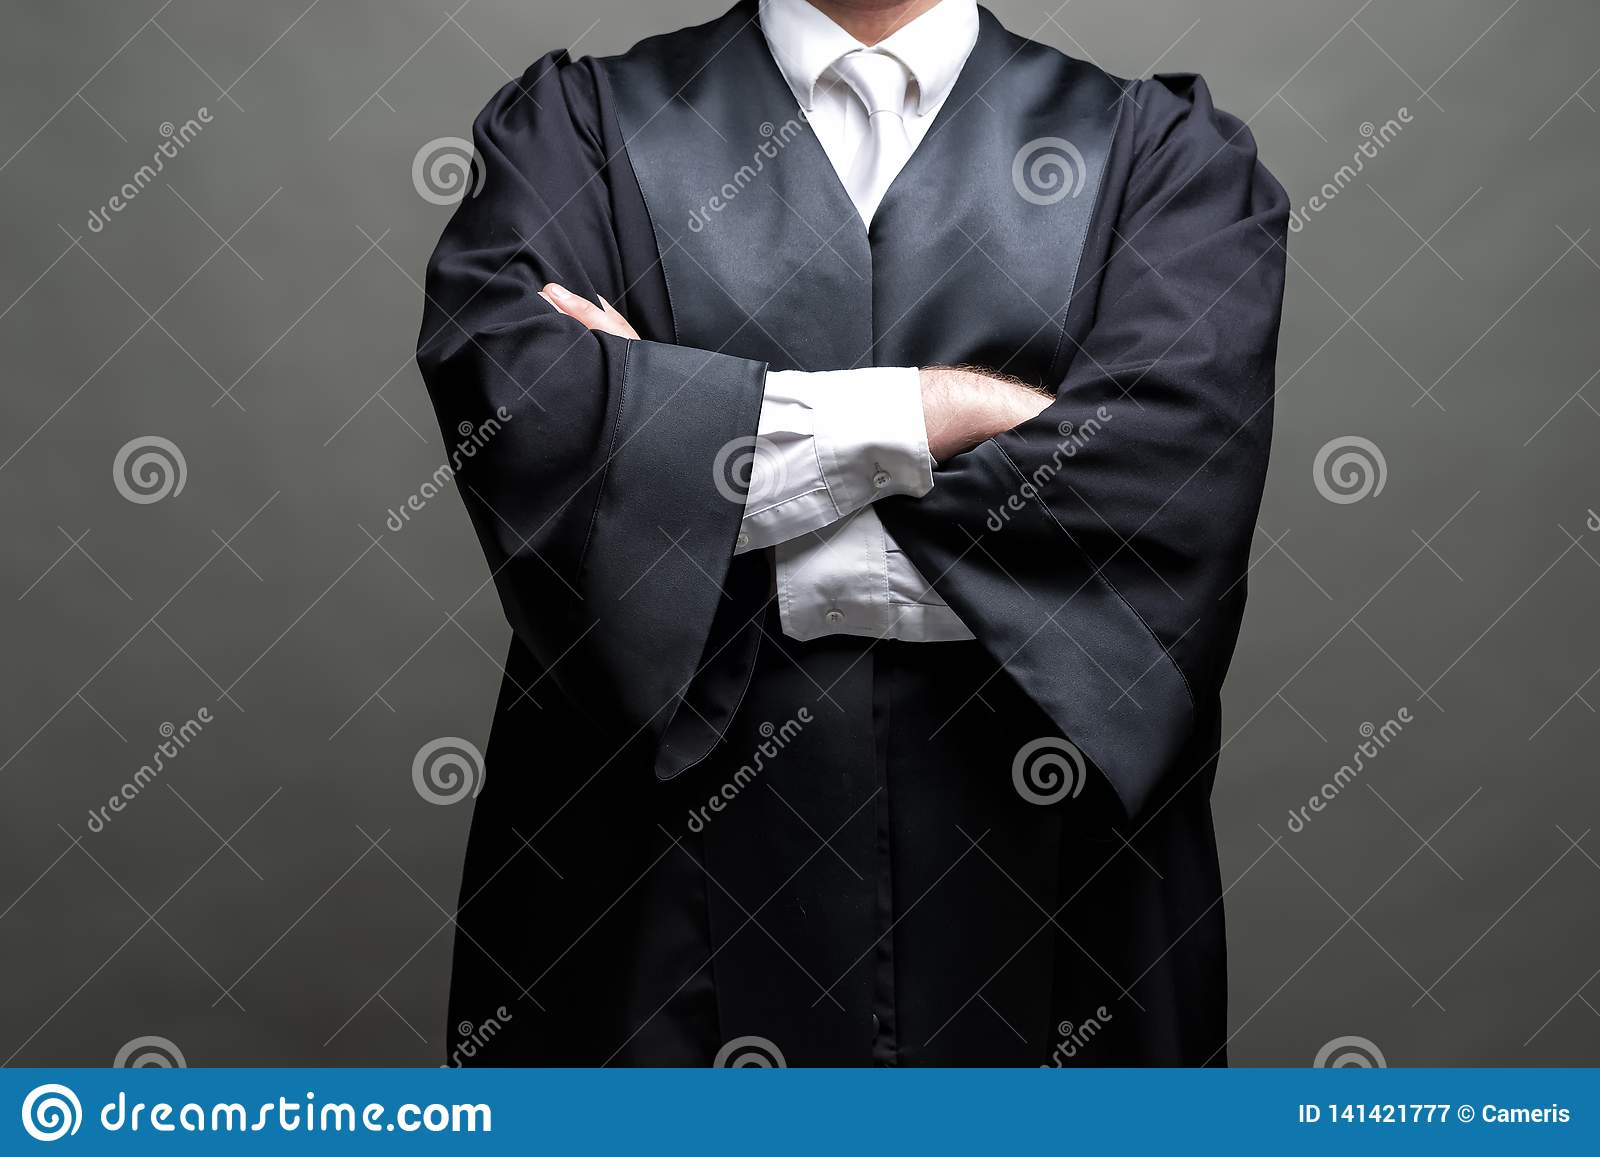 German Lawyer With A Robe Stock Image Image Of Dispute 141421777